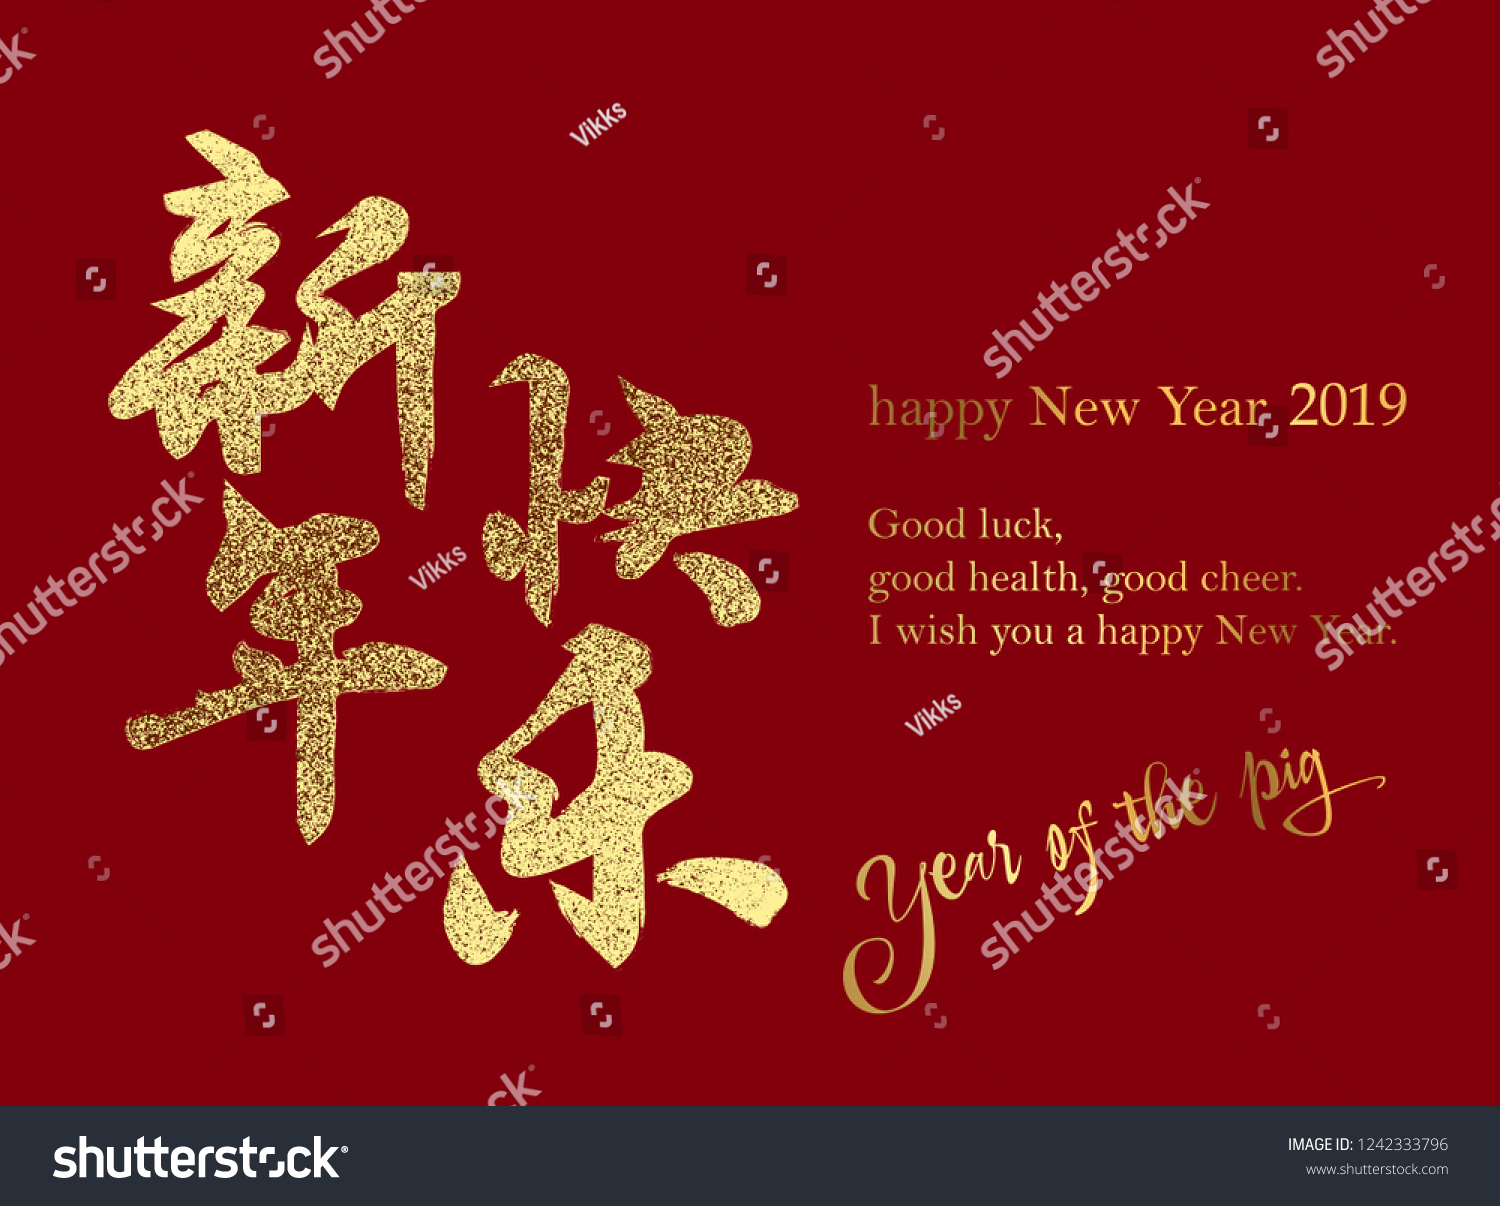 happy chinese new year 2019 new year greeting card with golden glitter text on